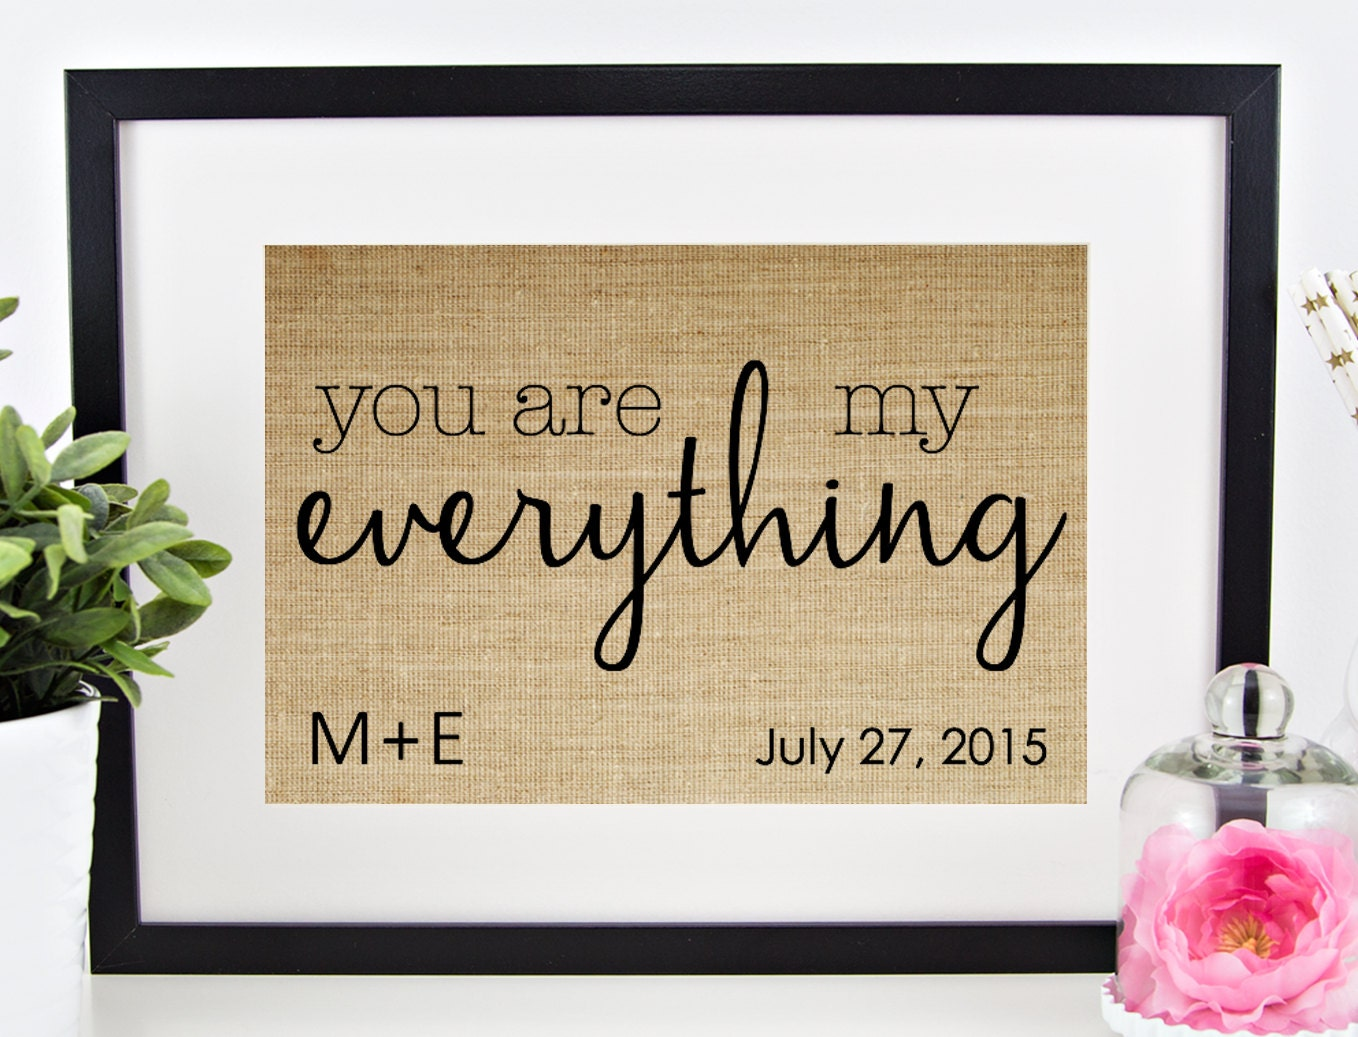 Wedding Gift Personalised: Bridal Shower Gift Personalized Wedding Gift For Couple